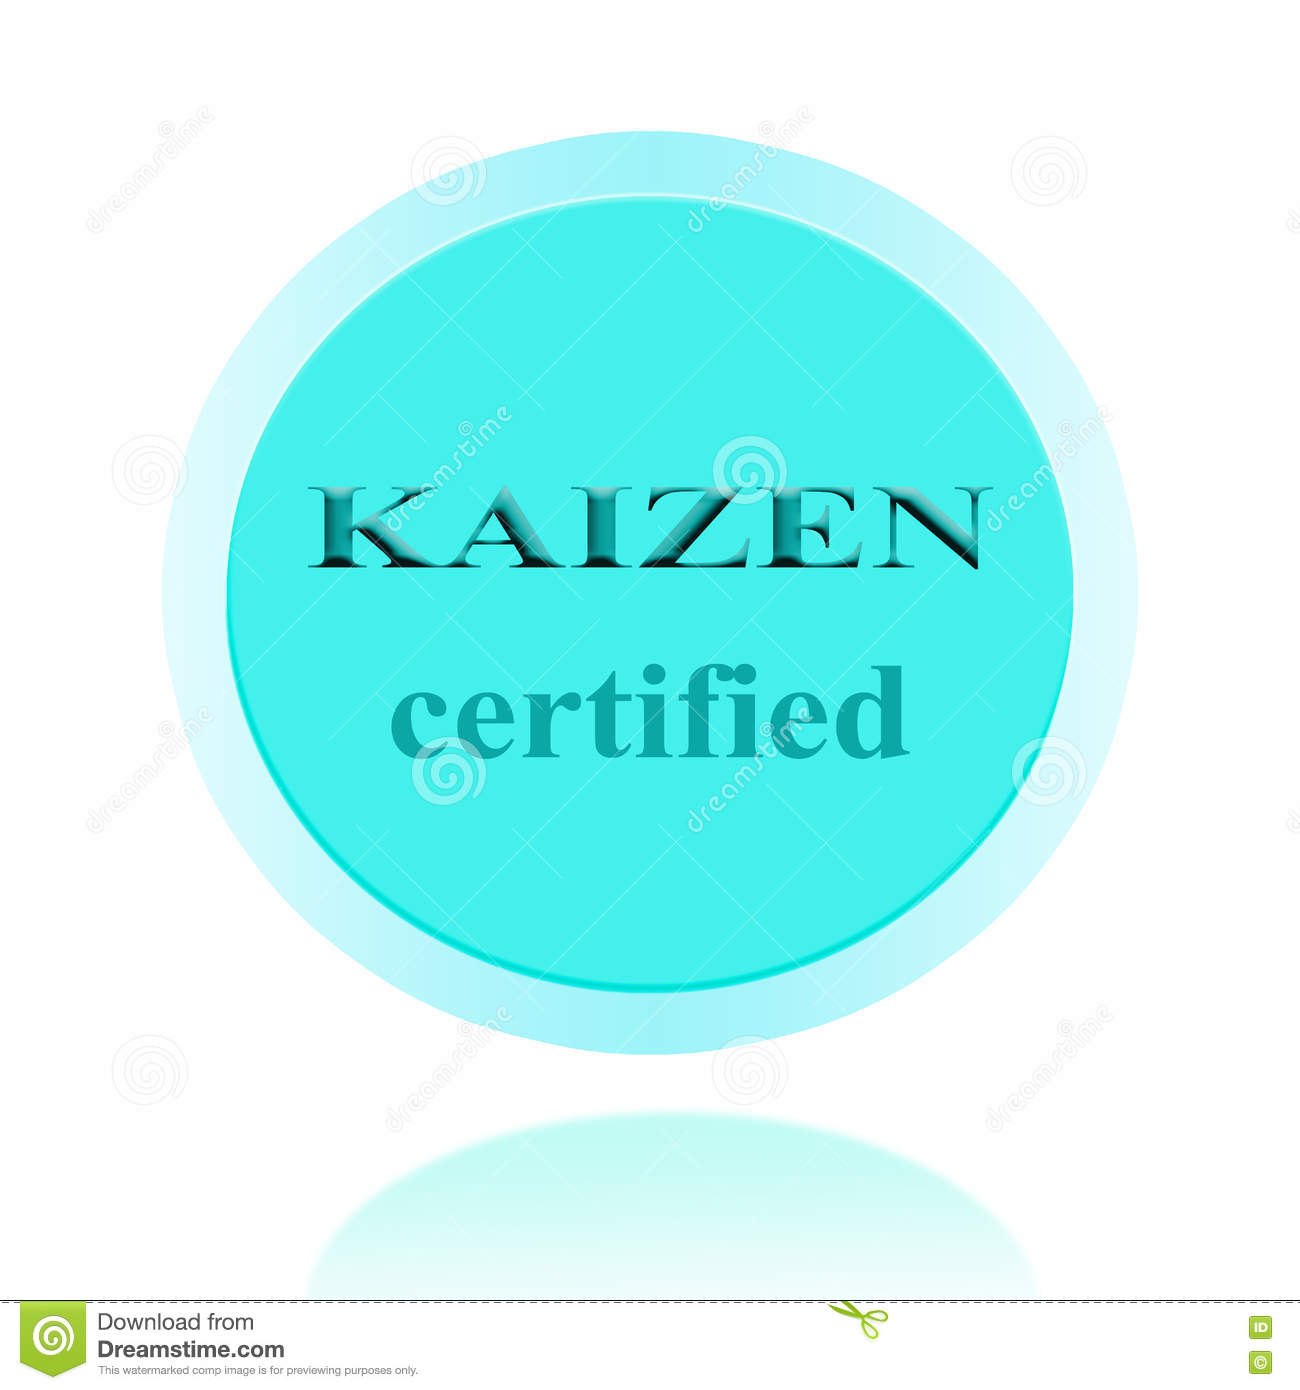 Kaizen certified icon or symbol image concept design with busine kaizen certified icon or symbol image concept design with busine 1betcityfo Gallery